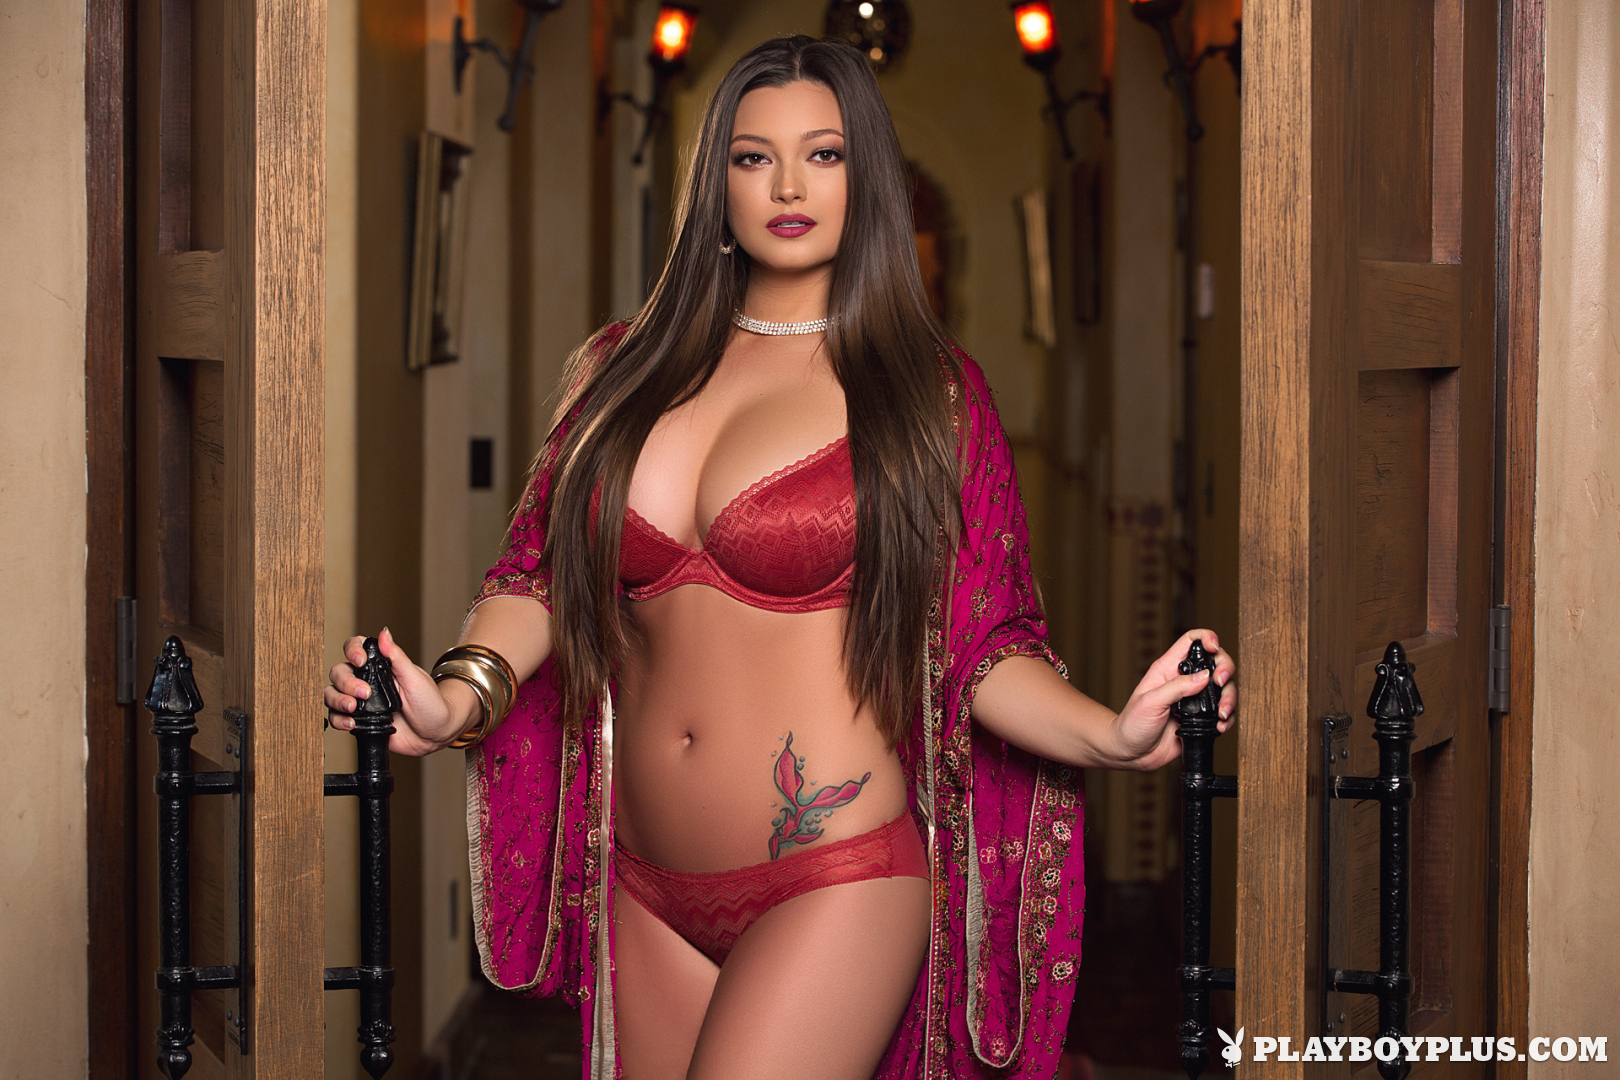 Chelsie Aryn Big Boobs in Sexy Red Lingerie